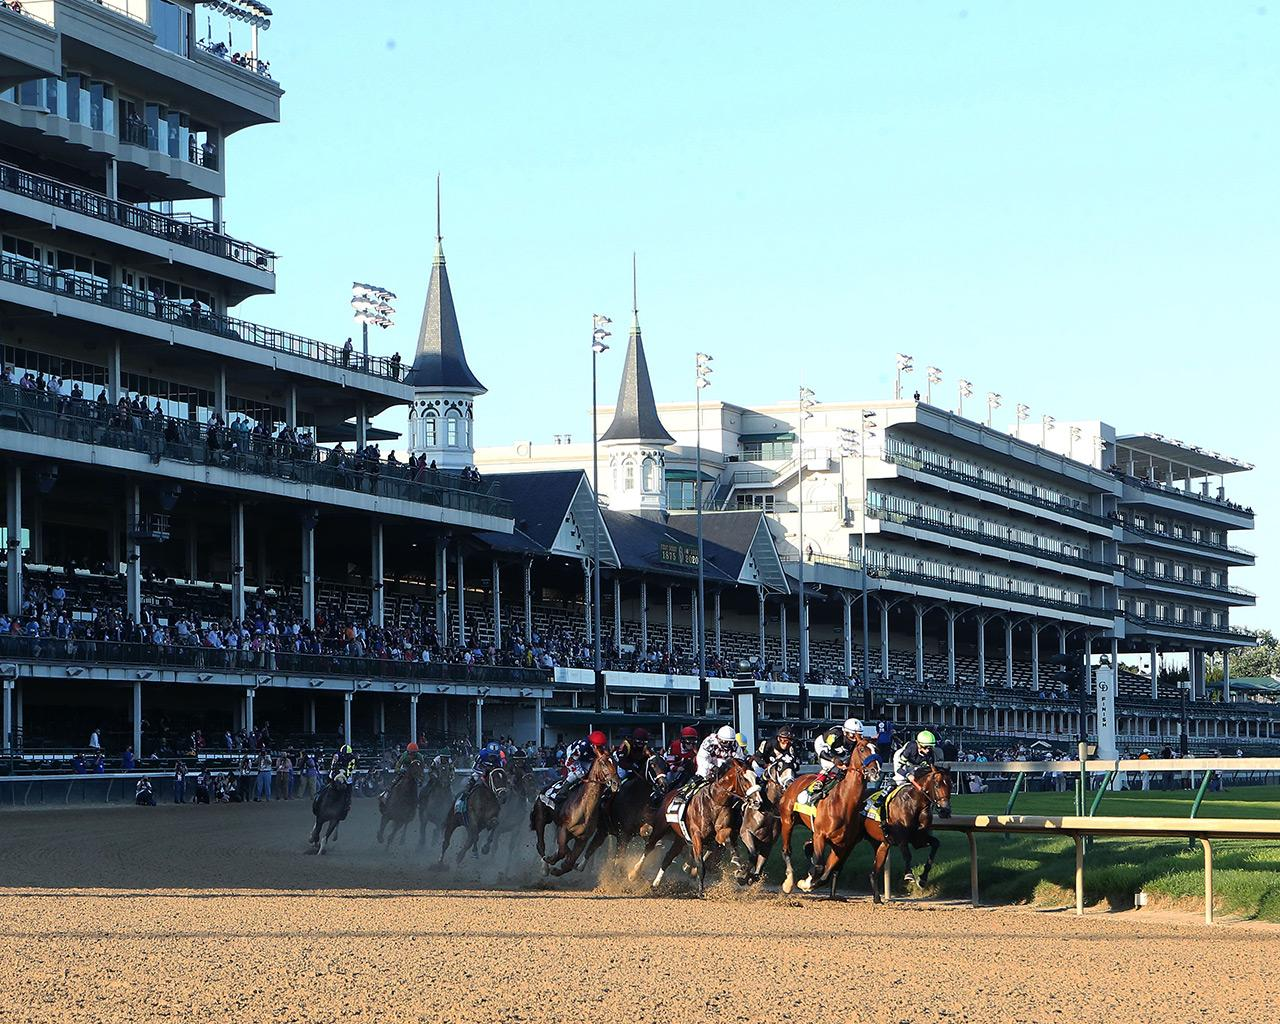 AUTHENTIC---The-Kentucky-Derby---146th-Running---09-05-20---R14---CD---Sweeping-Turn-01